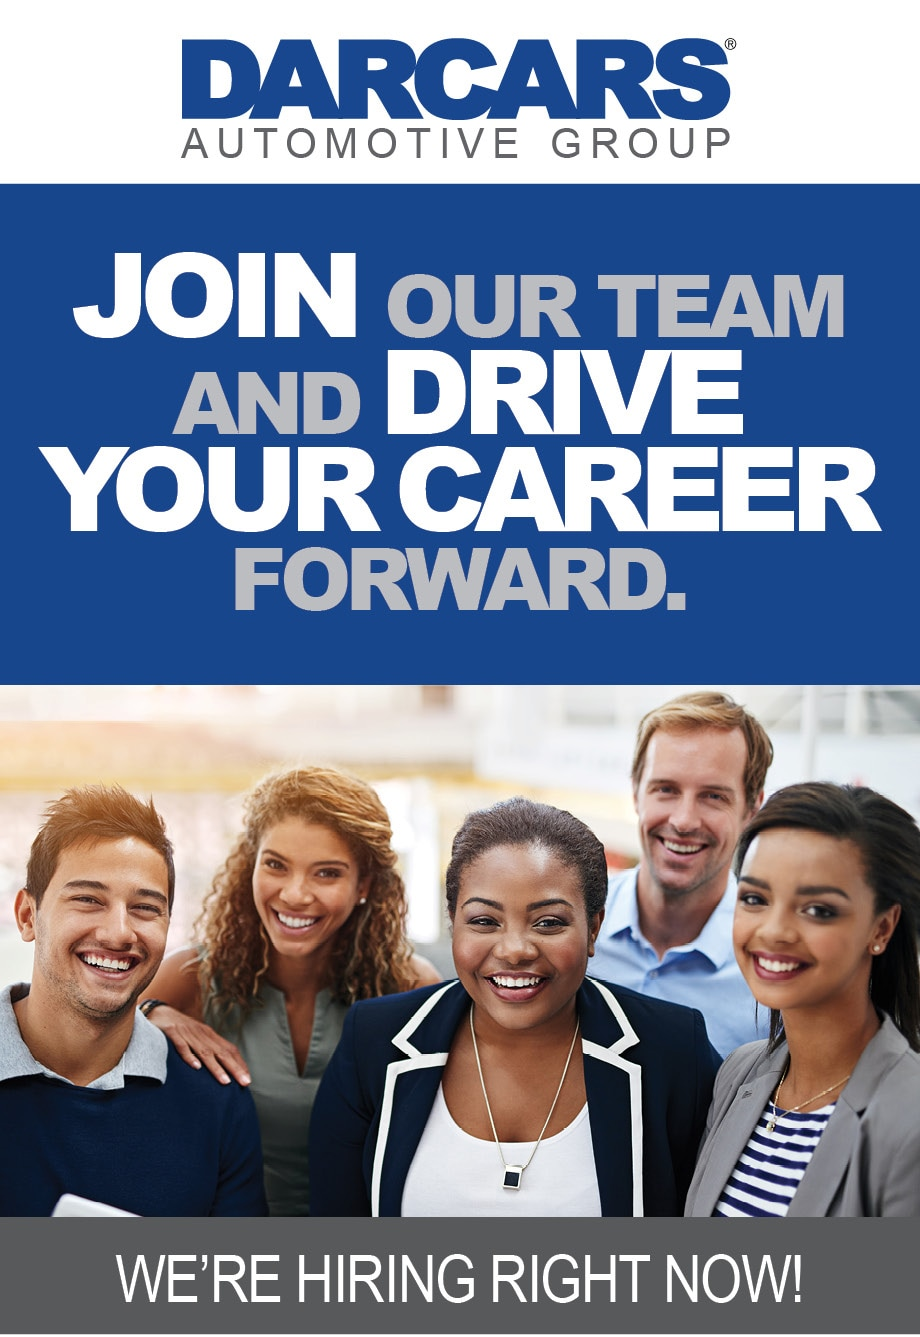 DARCARS Careers Openings throughout the DC Area